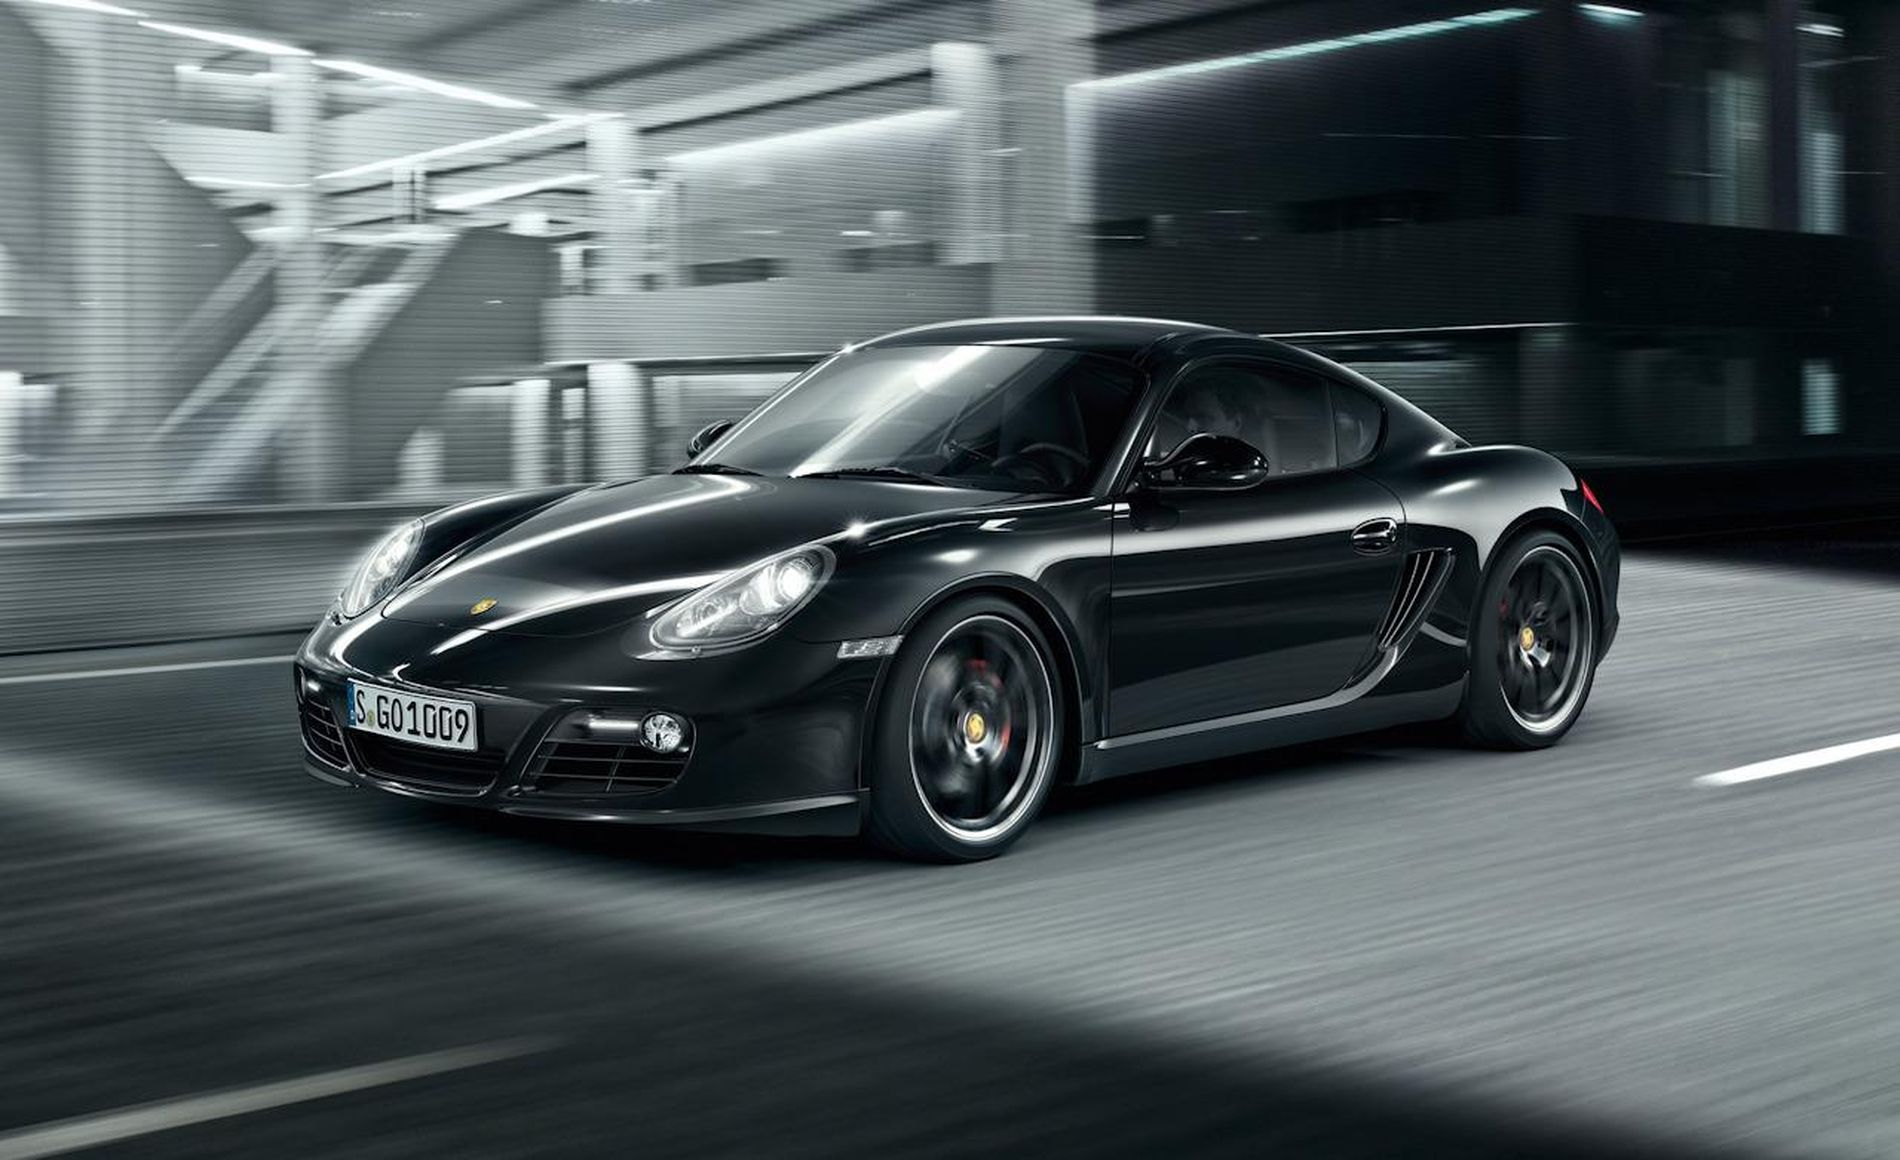 2017 Porsche Cayman photo - 1